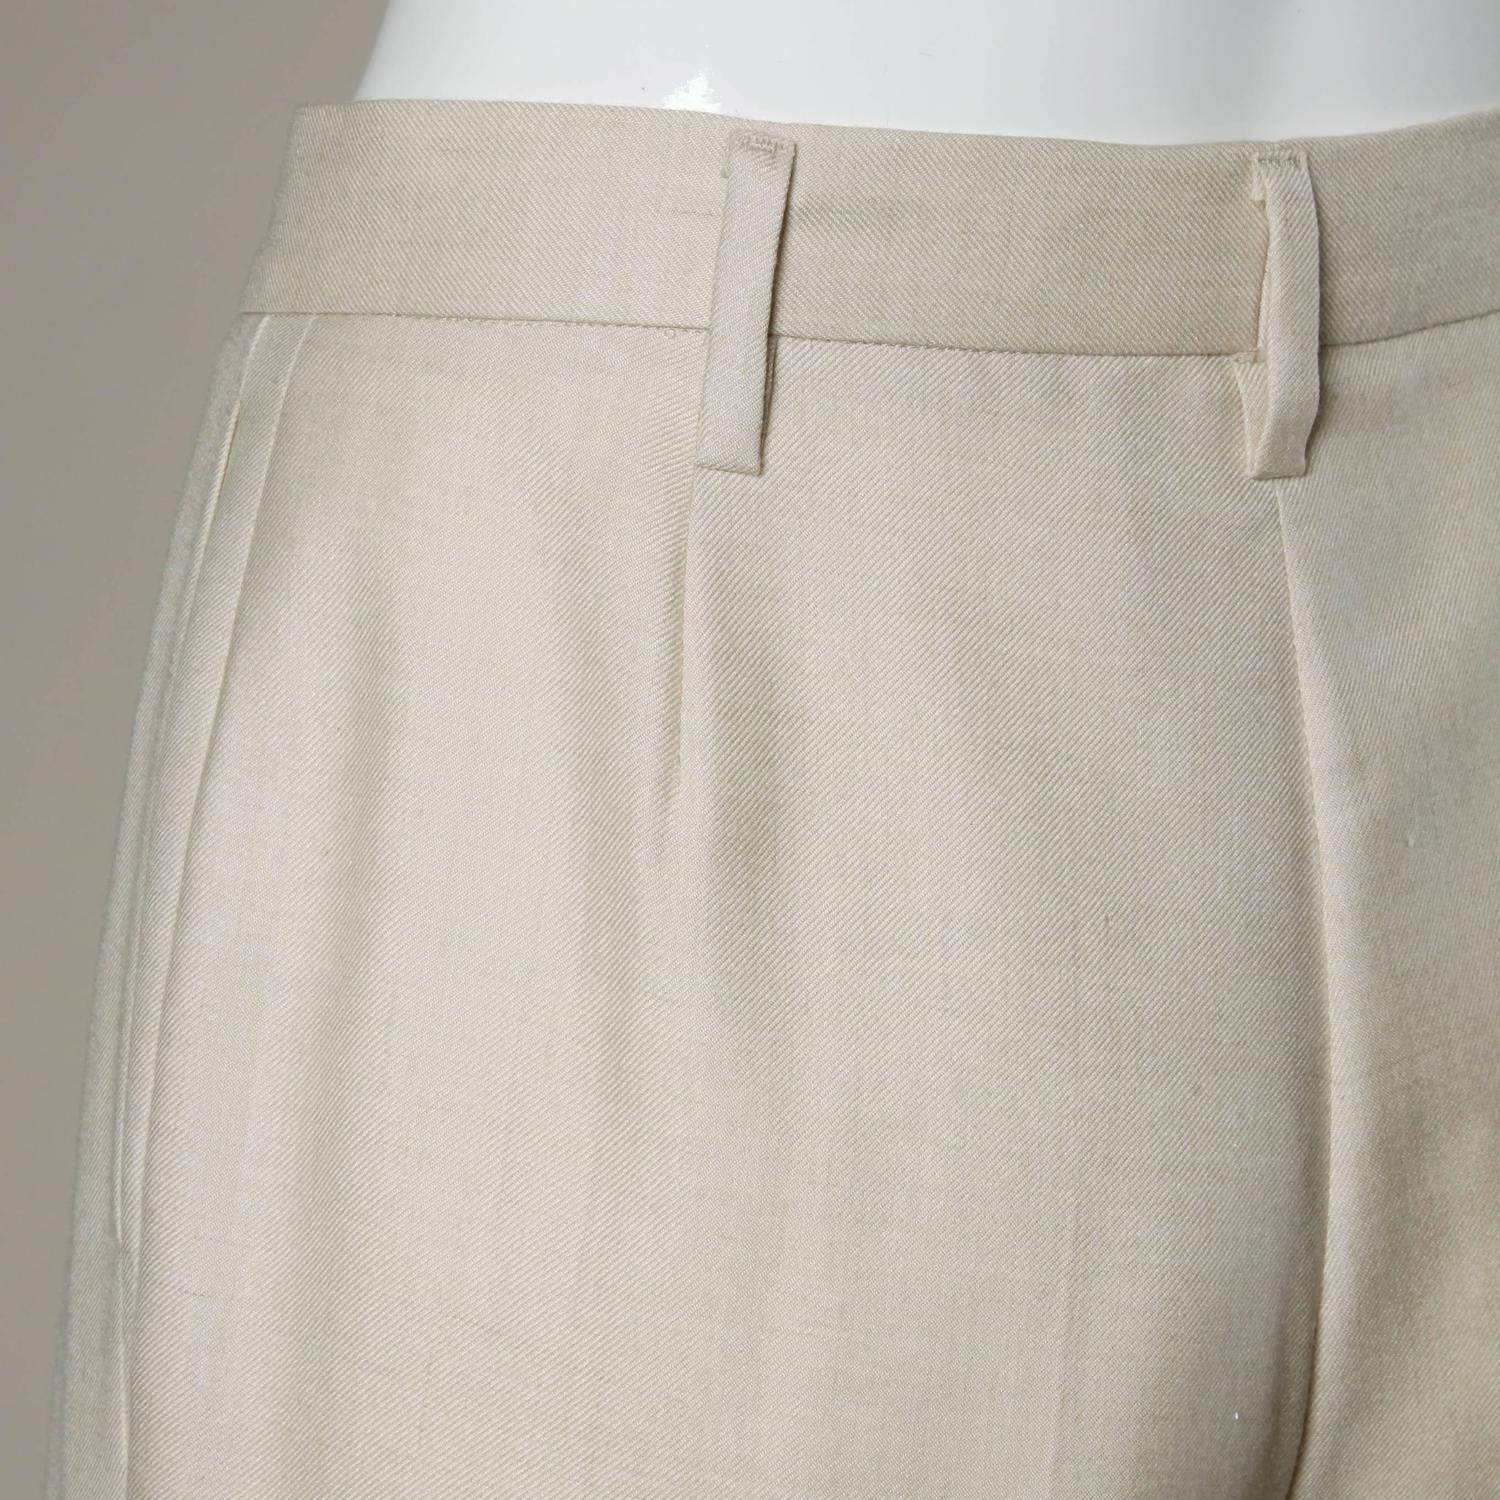 Jil Sander Wool Trousers or Pants in a Size 34 For Sale at ...